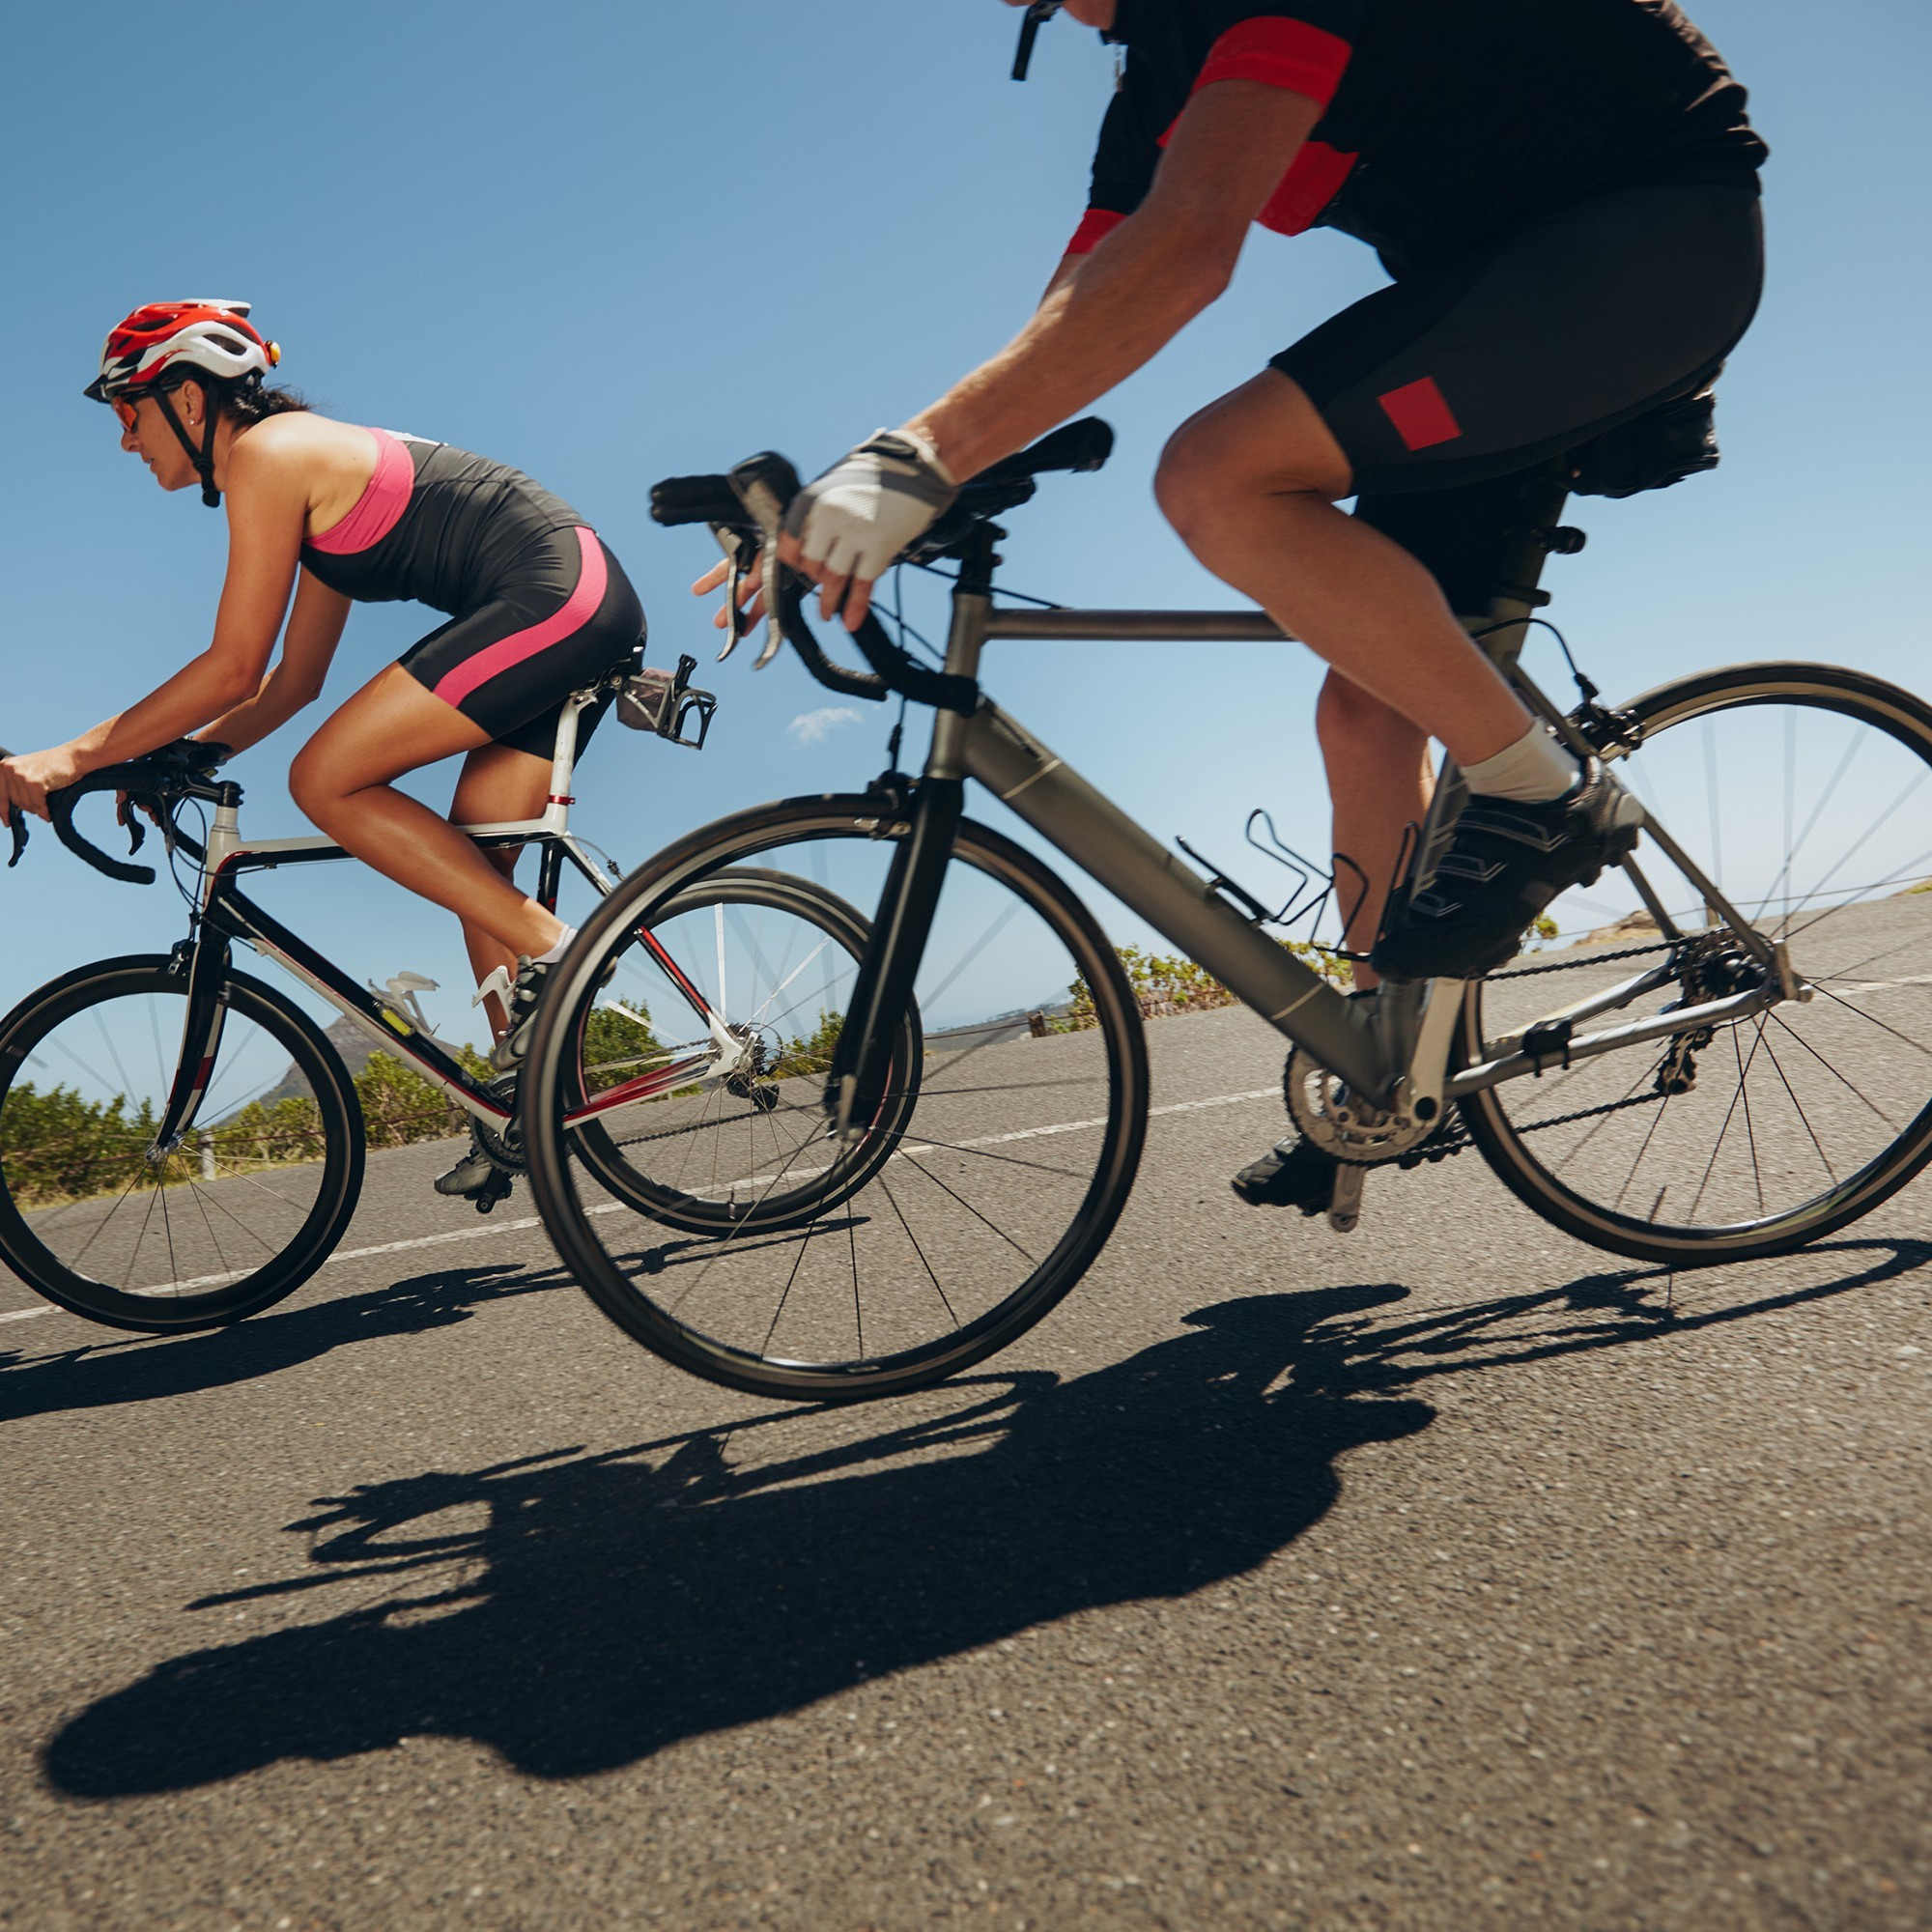 Cyclists warned about caffeine supplements after two young riders fall ill